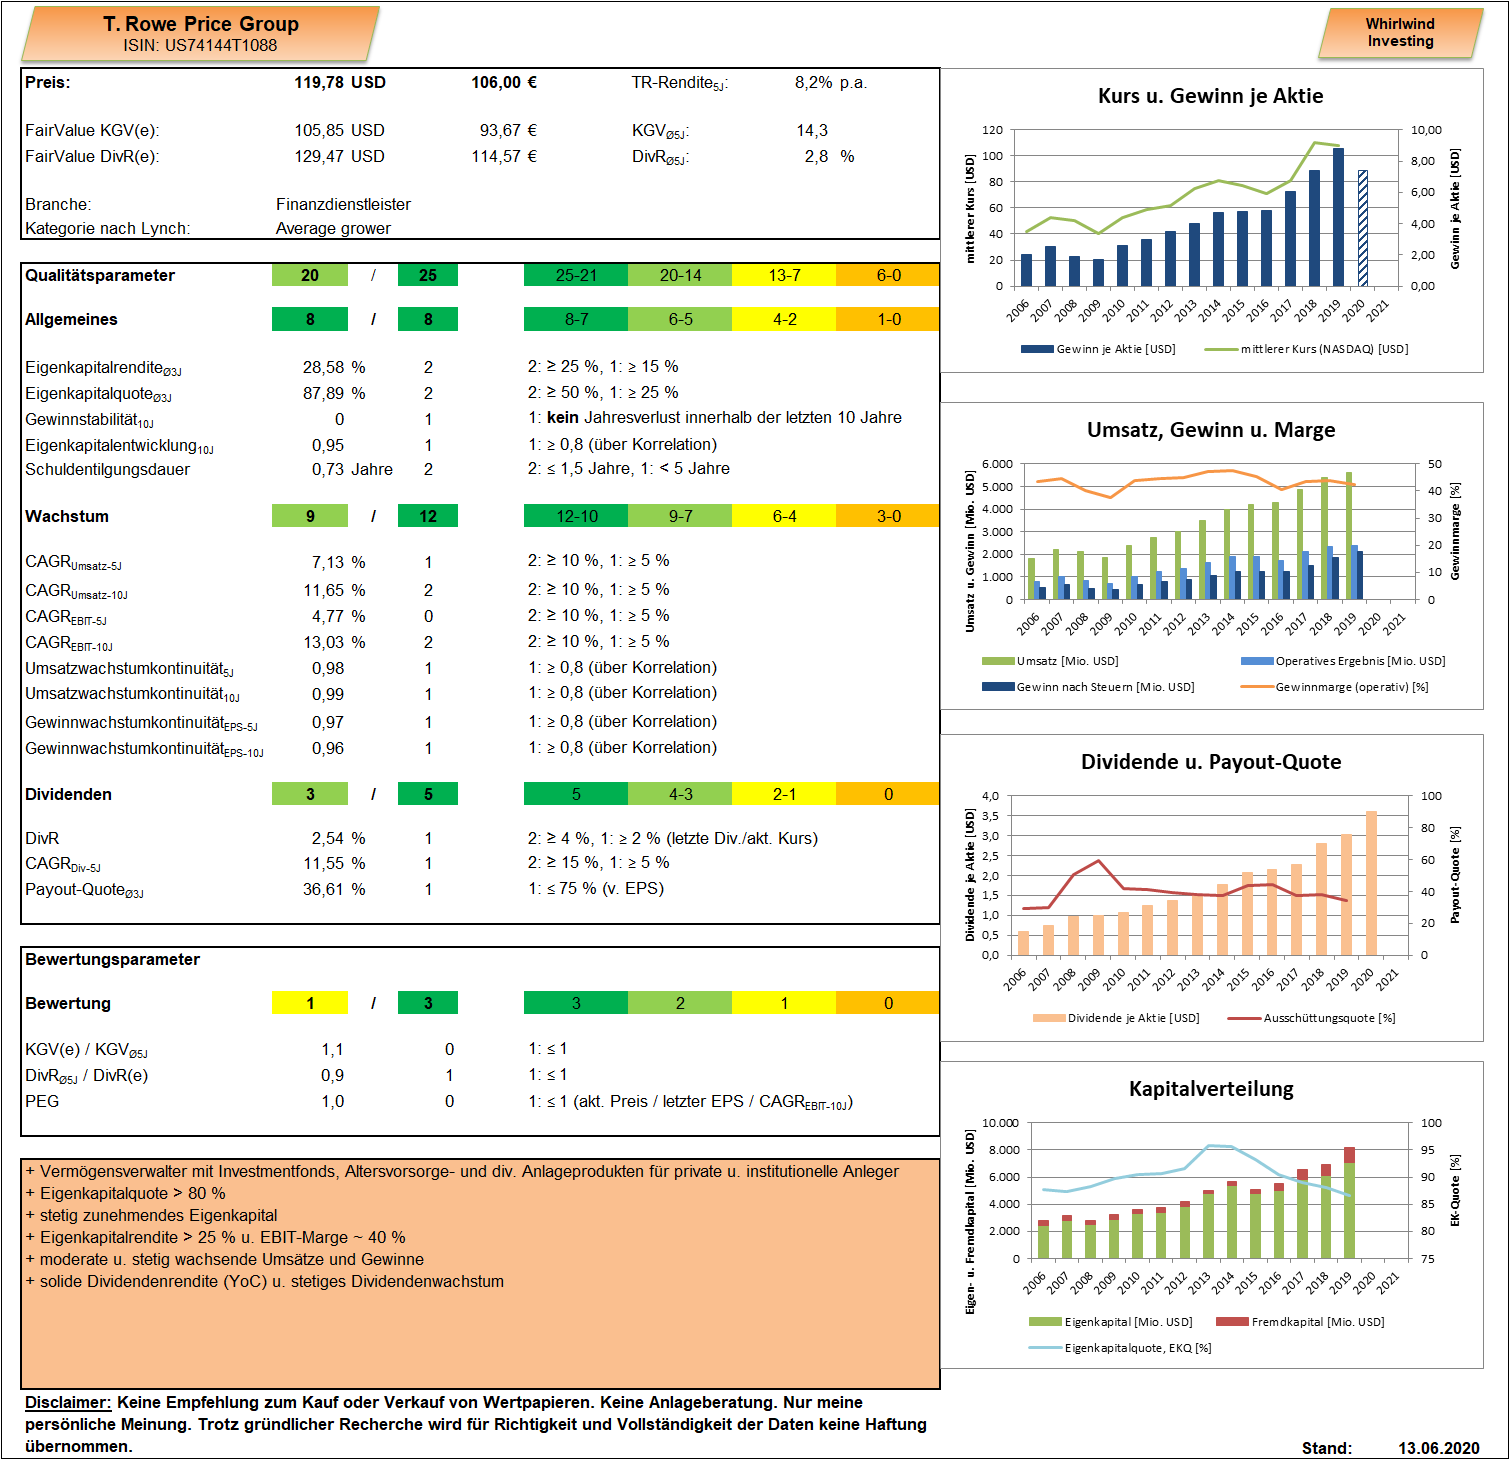 T. Rowe Price Dashboard Whirlwind-Investing